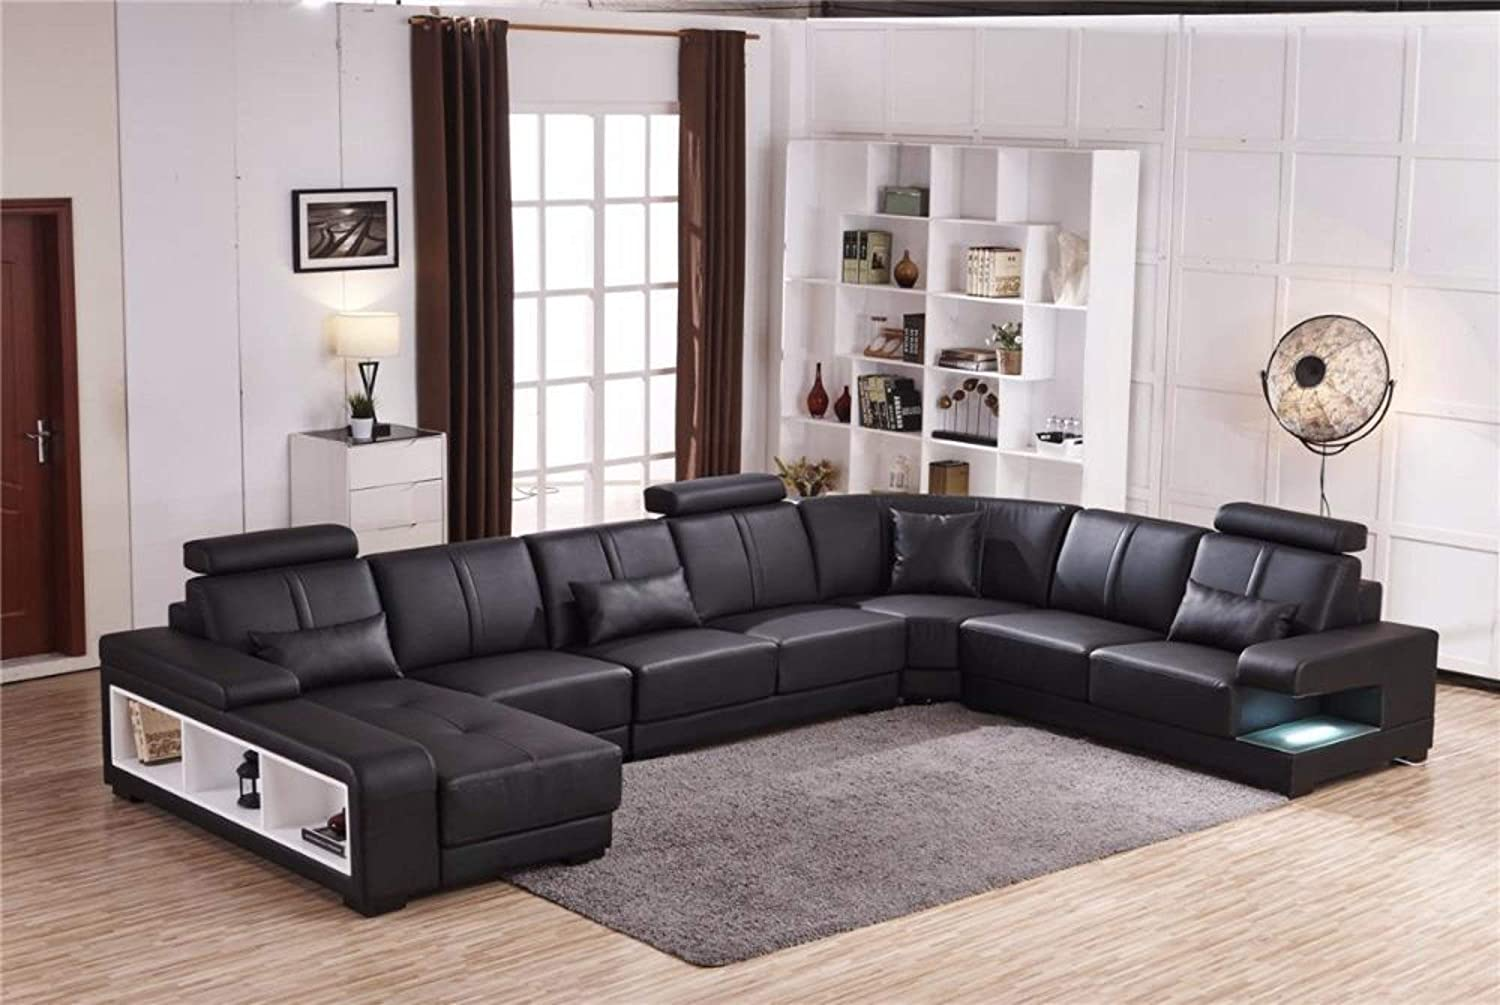 Juan Adjustable C-Type Six Seater Sectional Sofa in Coffee Brown by Athena  Crafts